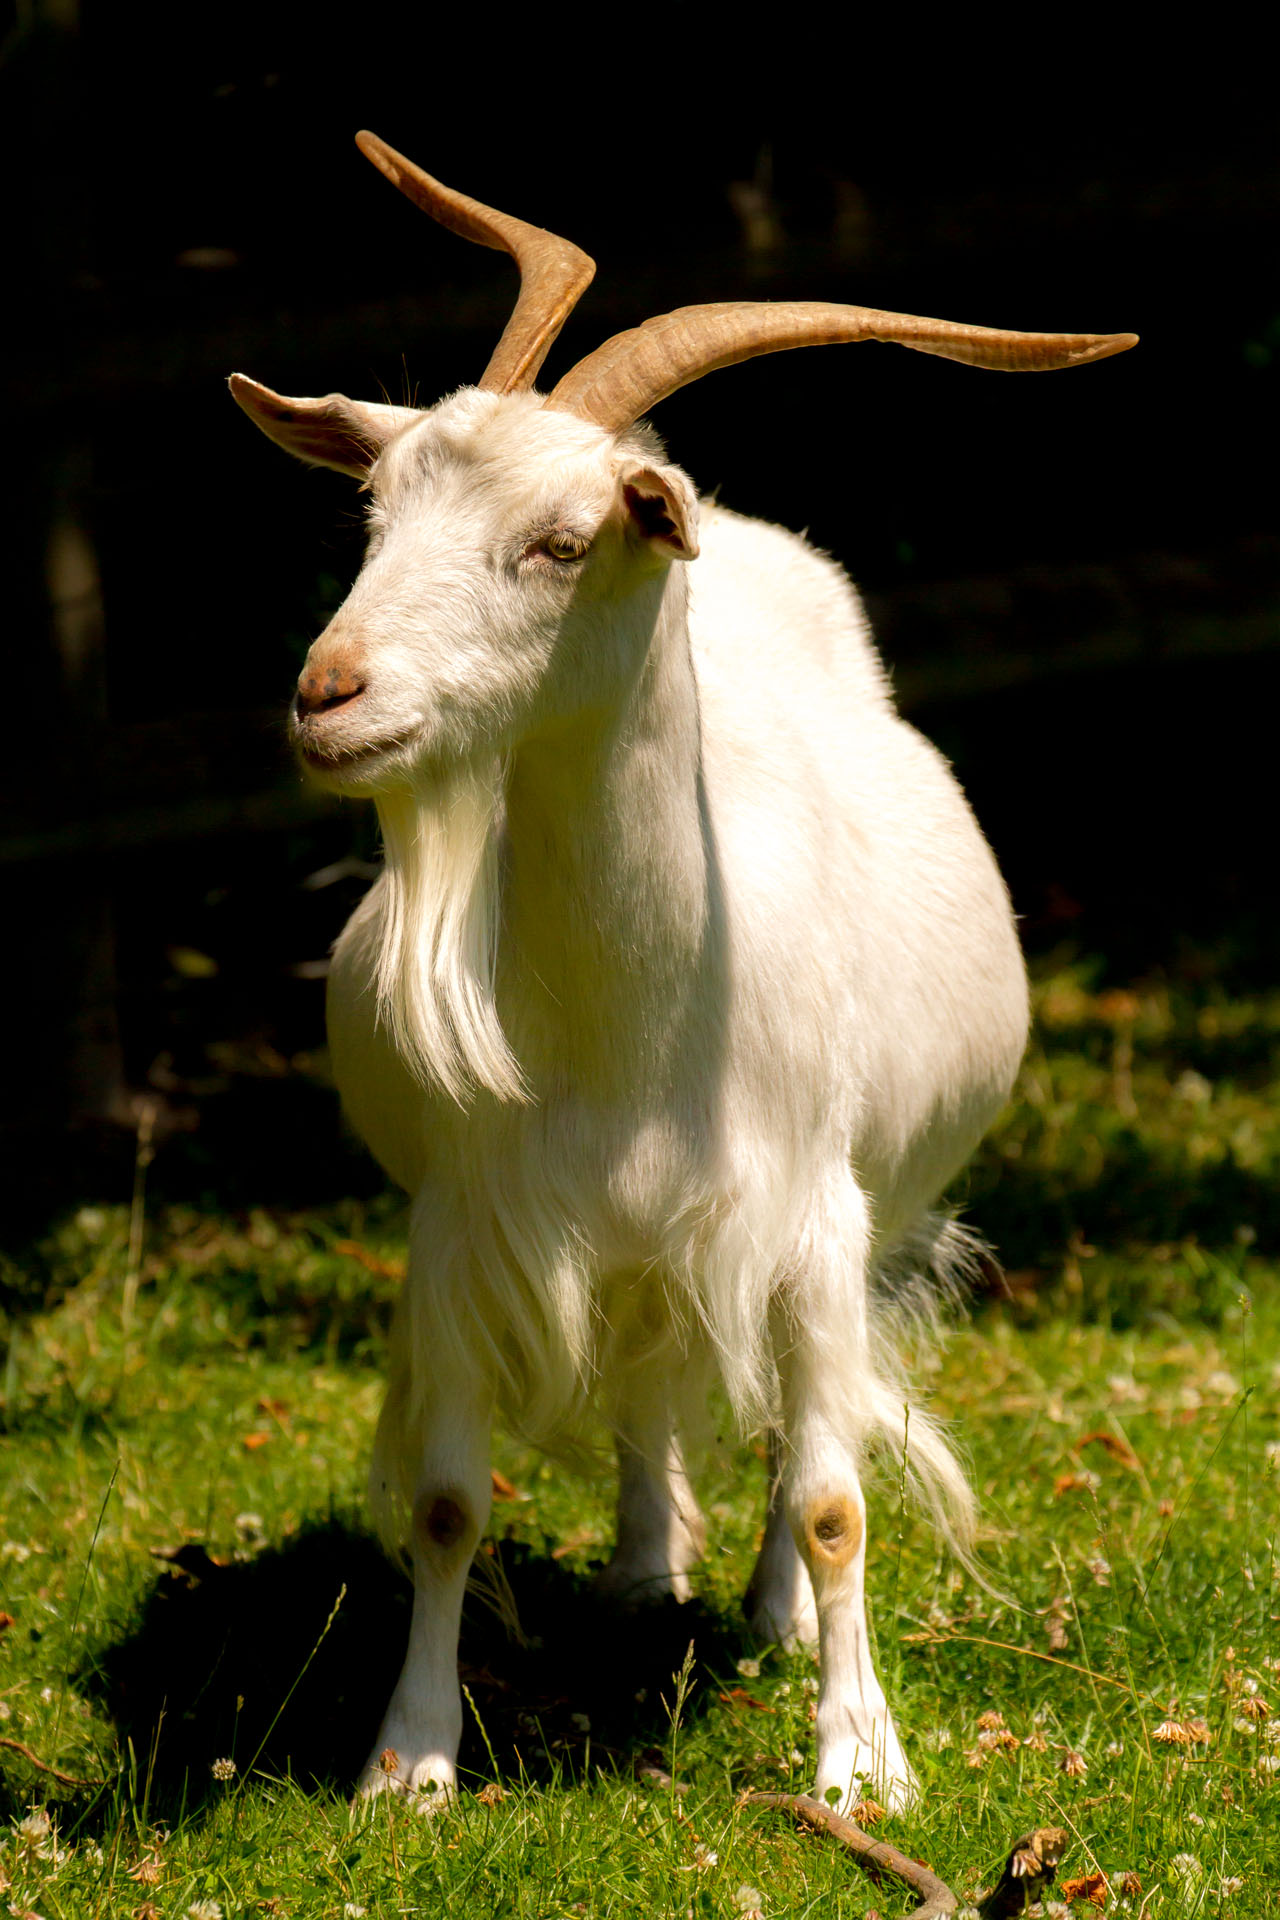 billy-goat - definition - What is